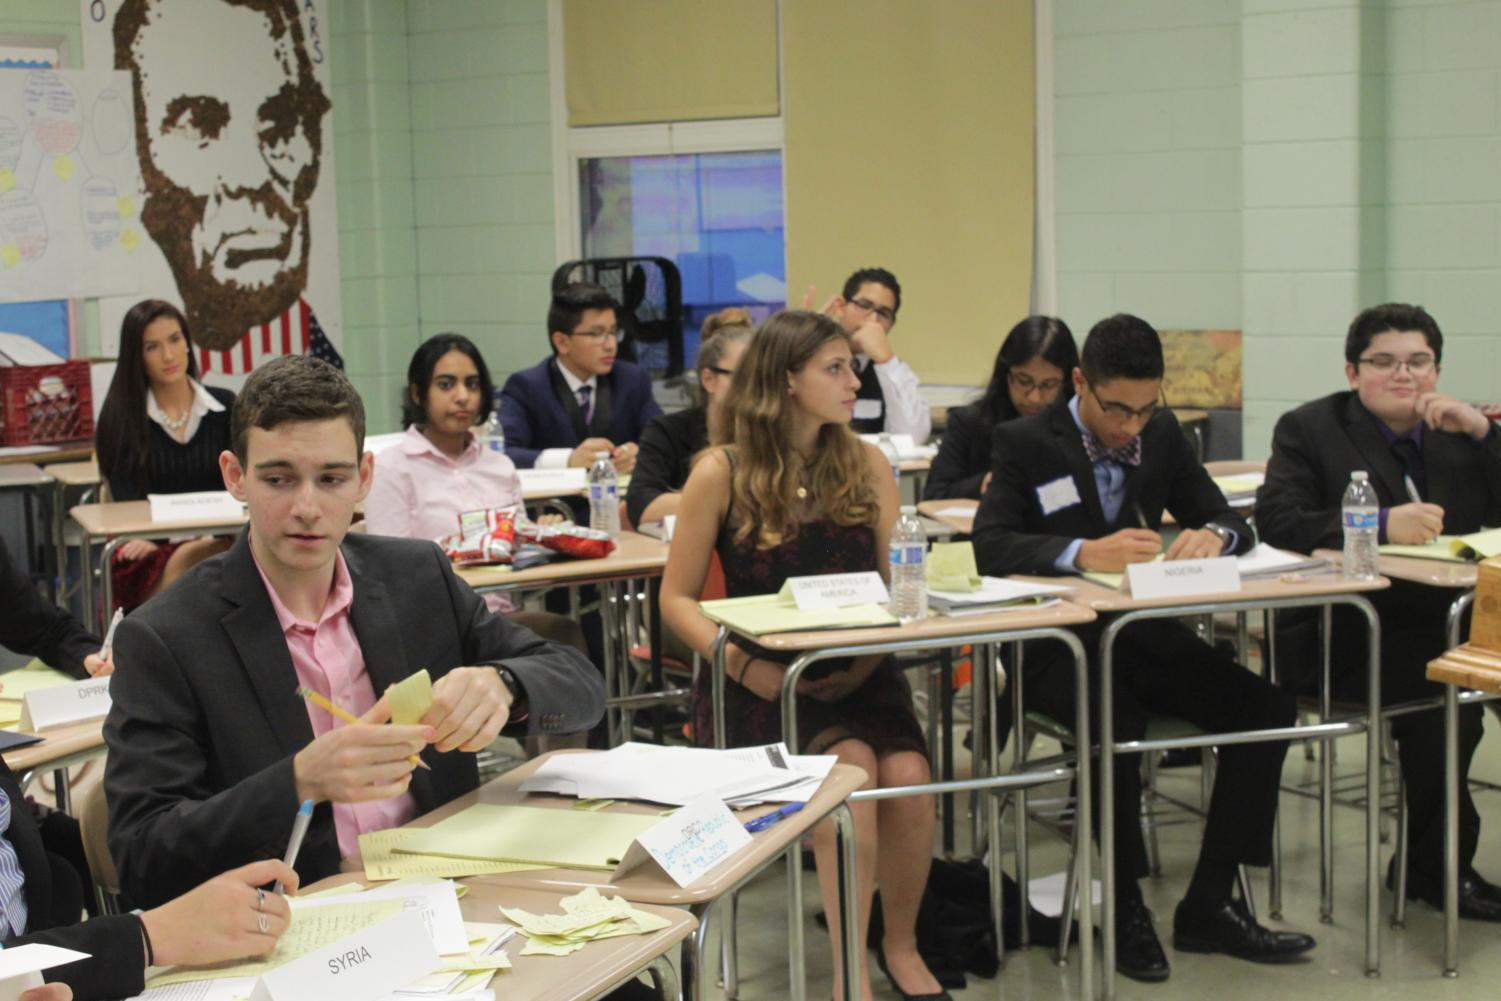 Students at Model UN Conference in Committee